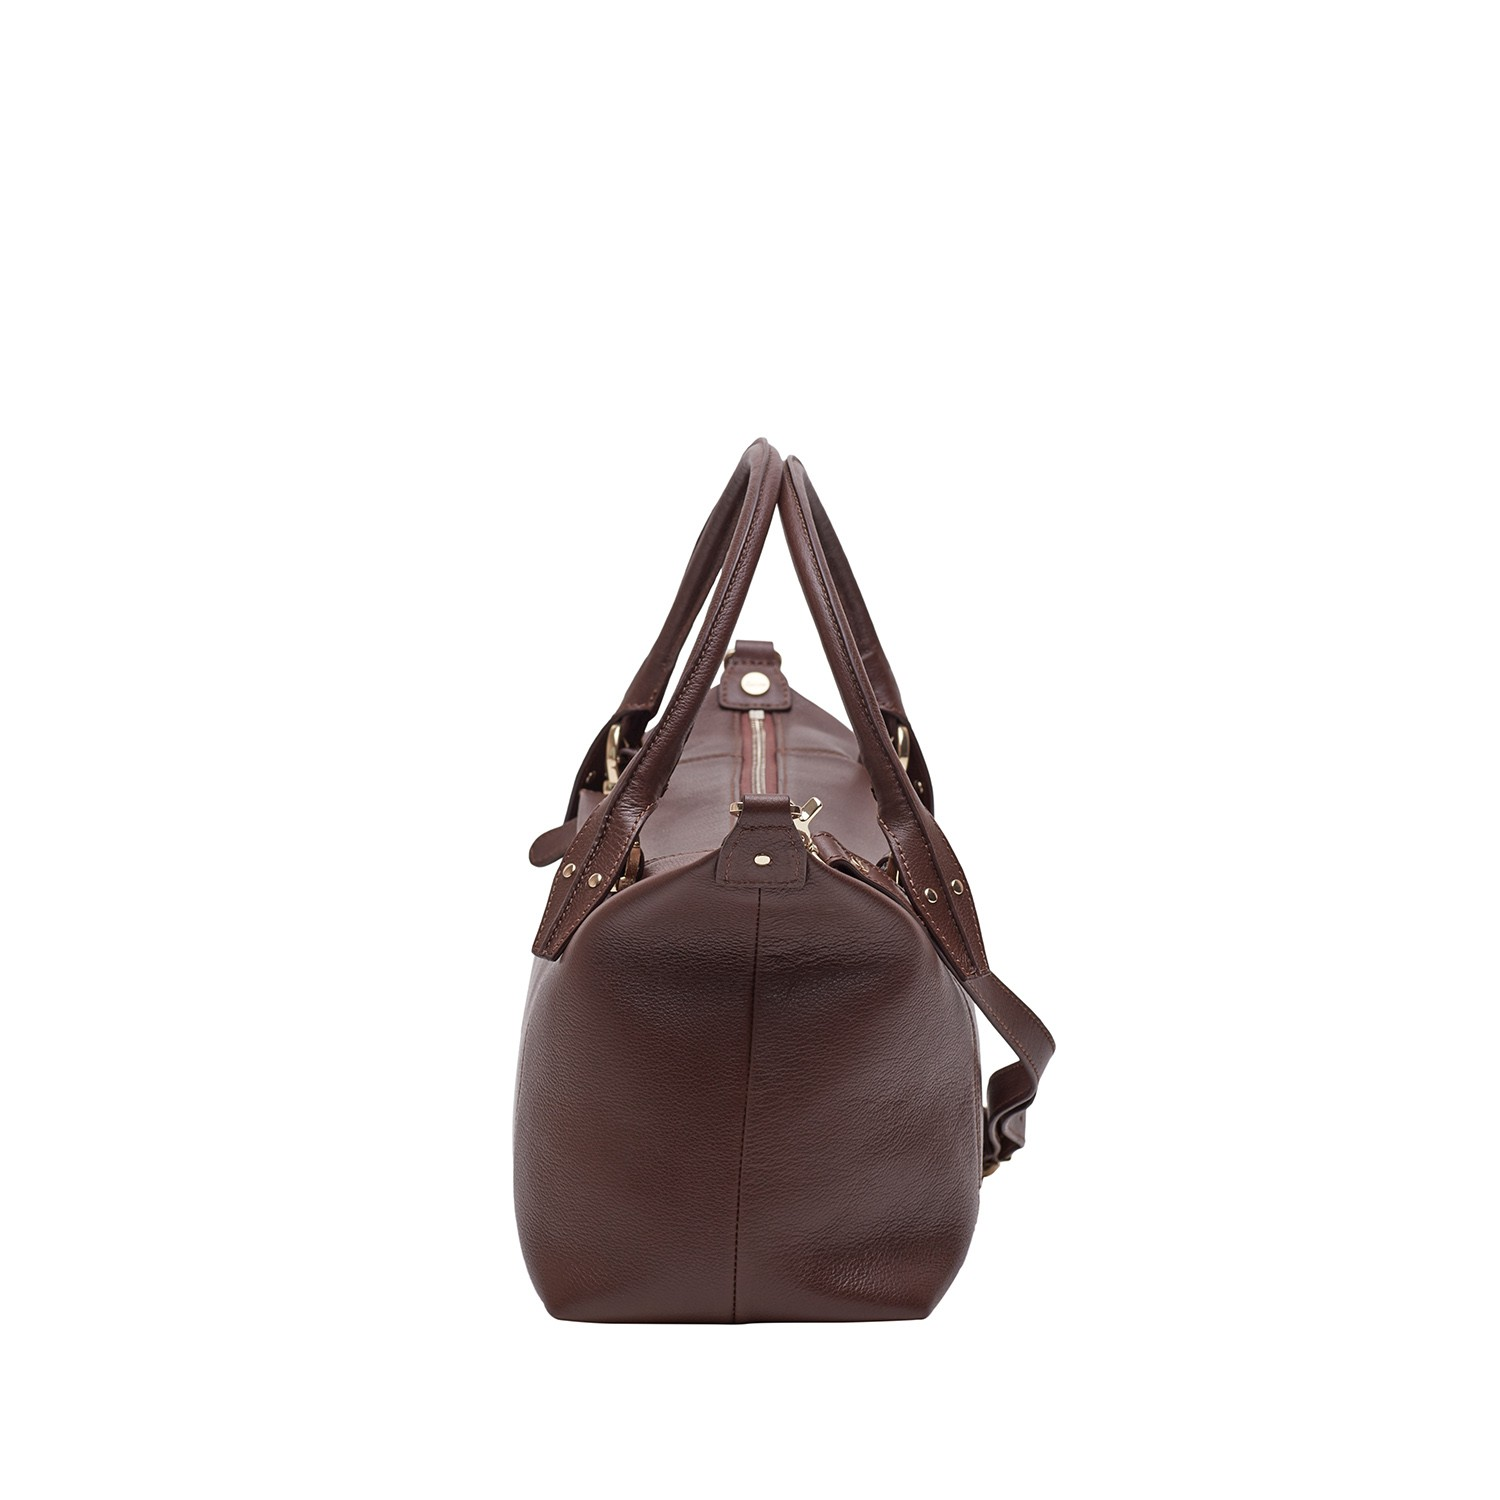 ACUIR Handbag for Women, Satchel, Chocolate